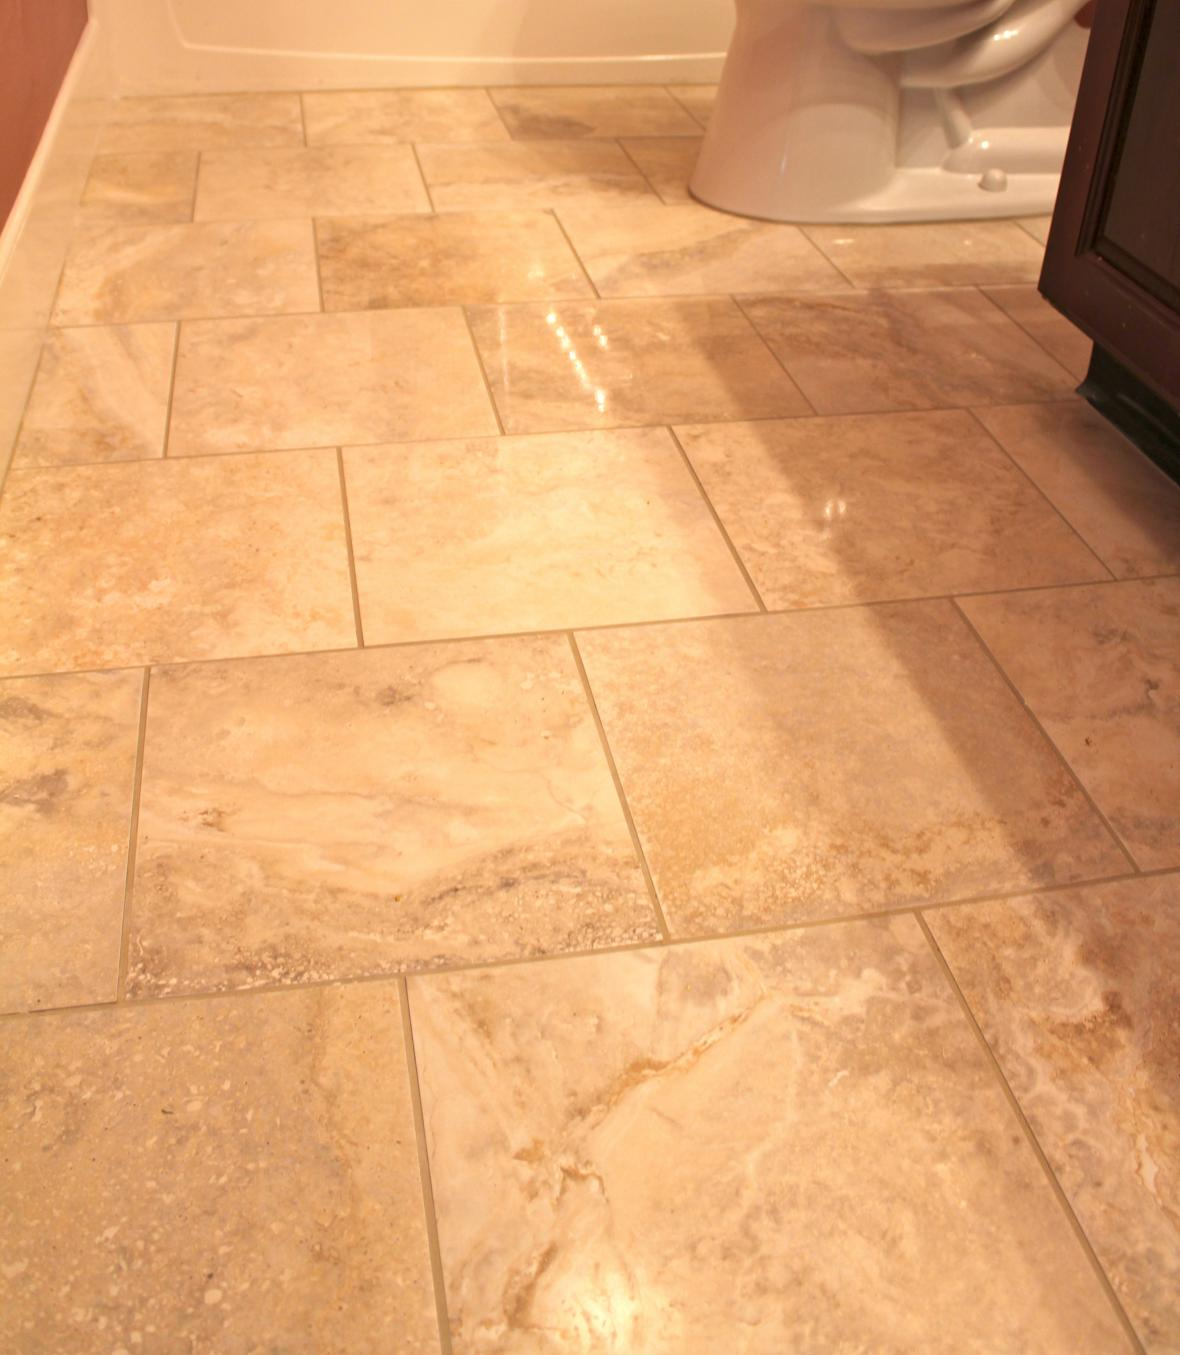 Base For Bathroom Floor Tiles : Porcelain tile bathroom floor new jersey custom